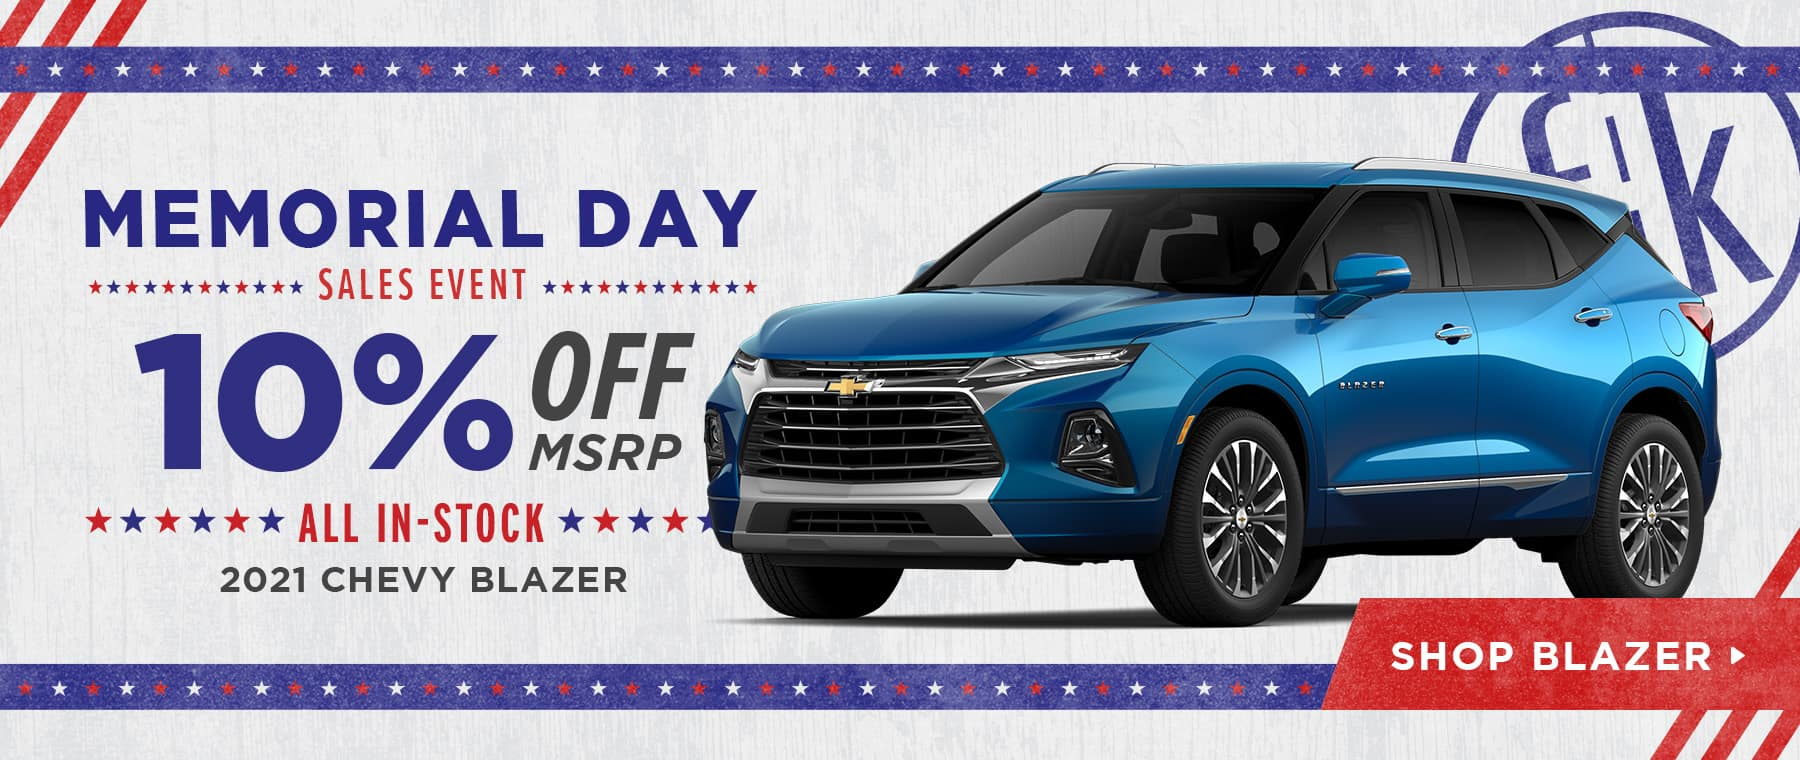 10% Off All In-Stock 2021 Chevy Blazer